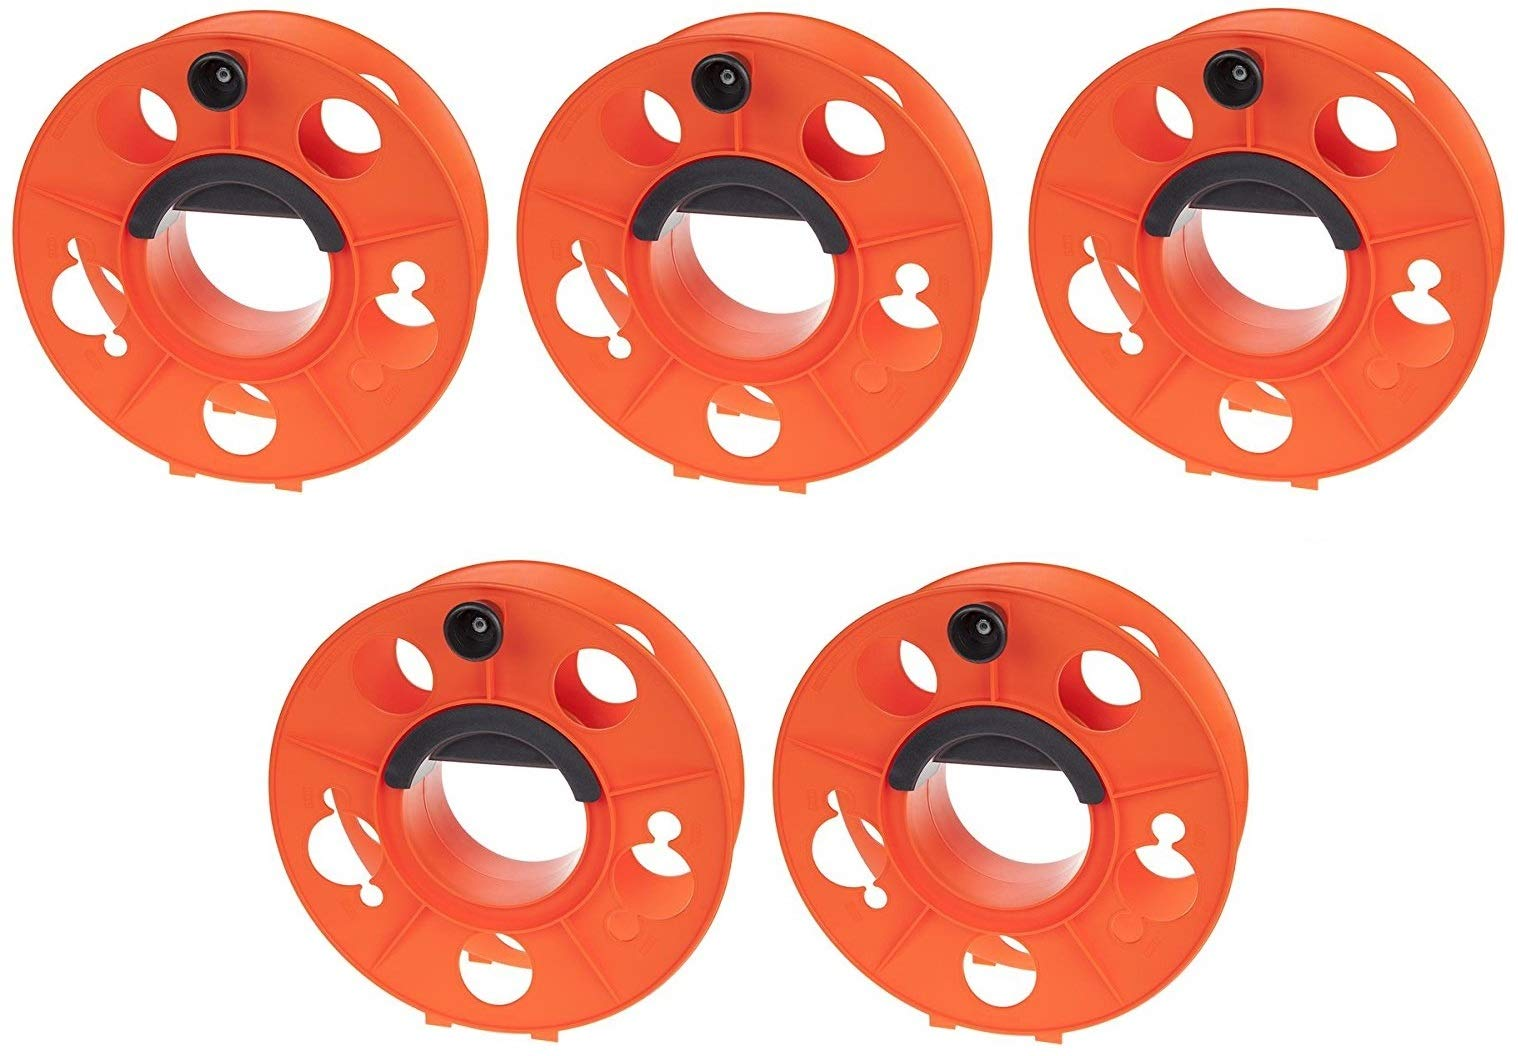 Bayco KW-130 Cord Storage Reel with Center Spin Handle, 150-Feet (5-(Pack))